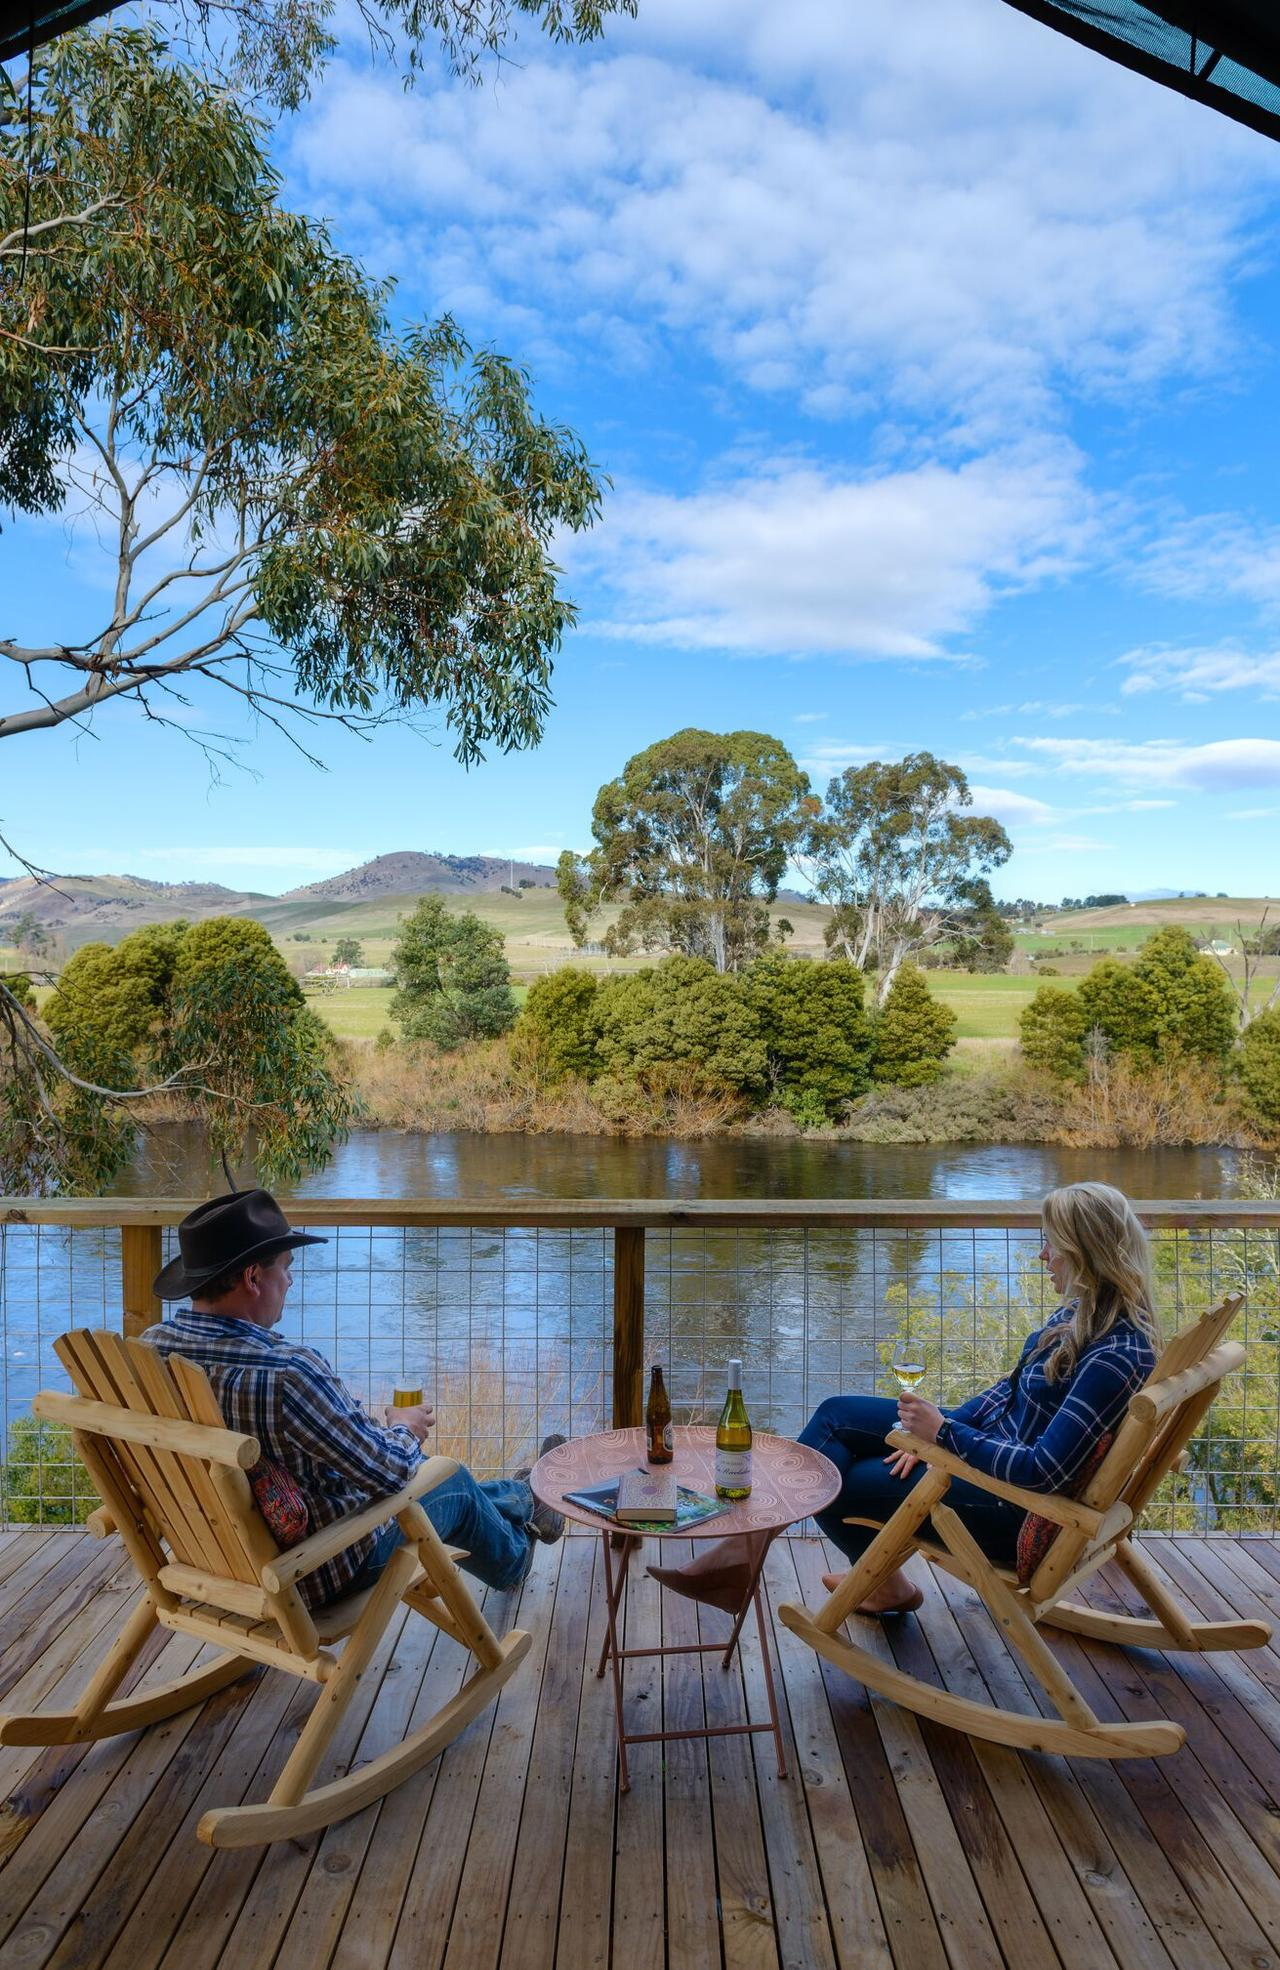 Arabian nights meets an Australian bush camp at Truffle Lodge, a new glamping experience on the banks of Tasmania's tranquil Derwent River  For Wander List in Gold Coast Eye